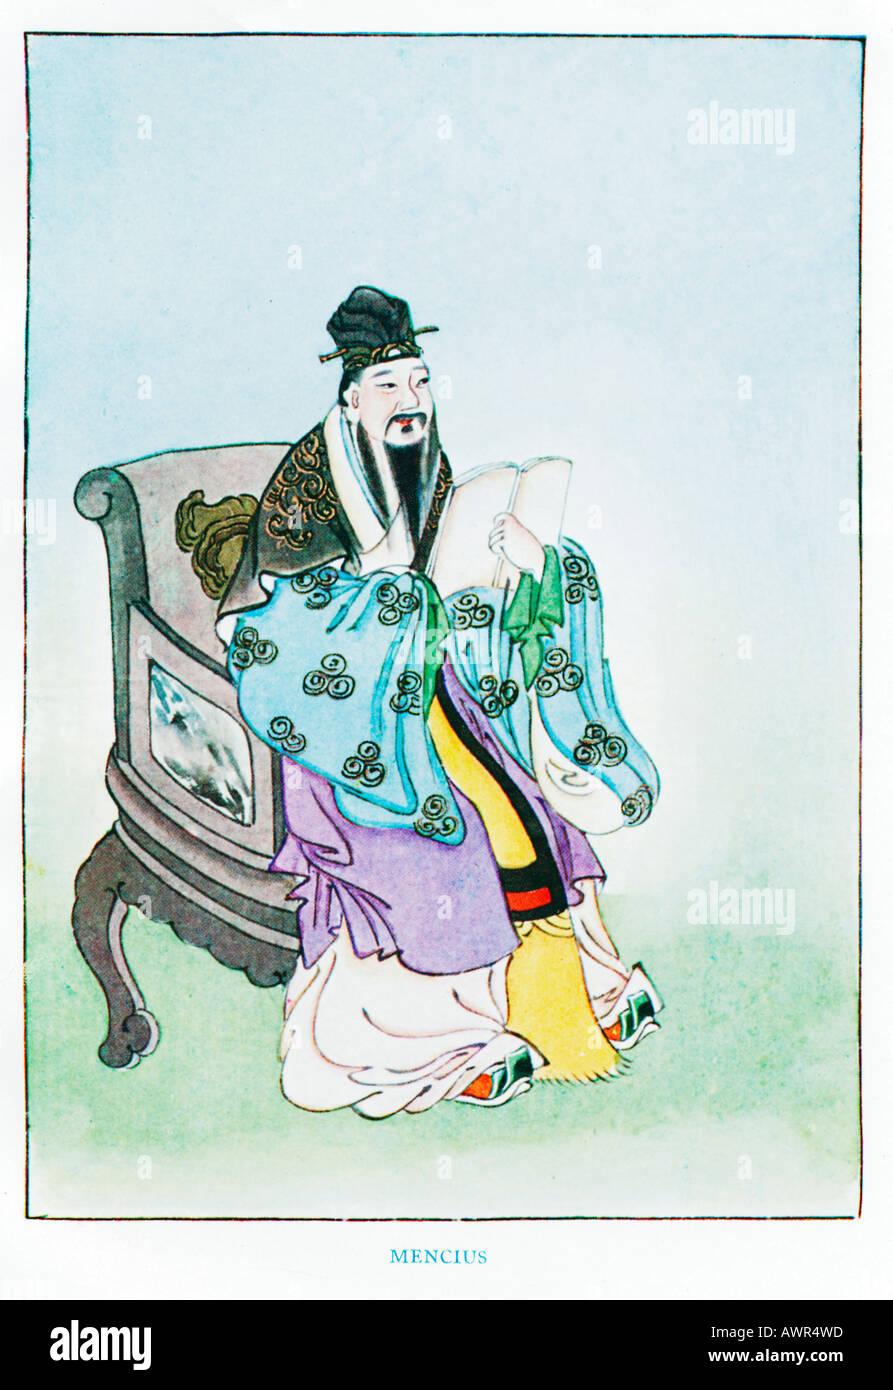 Mencius 1920s illustration by a Chinese artist from a book on Myths and Legends of China - Stock Image